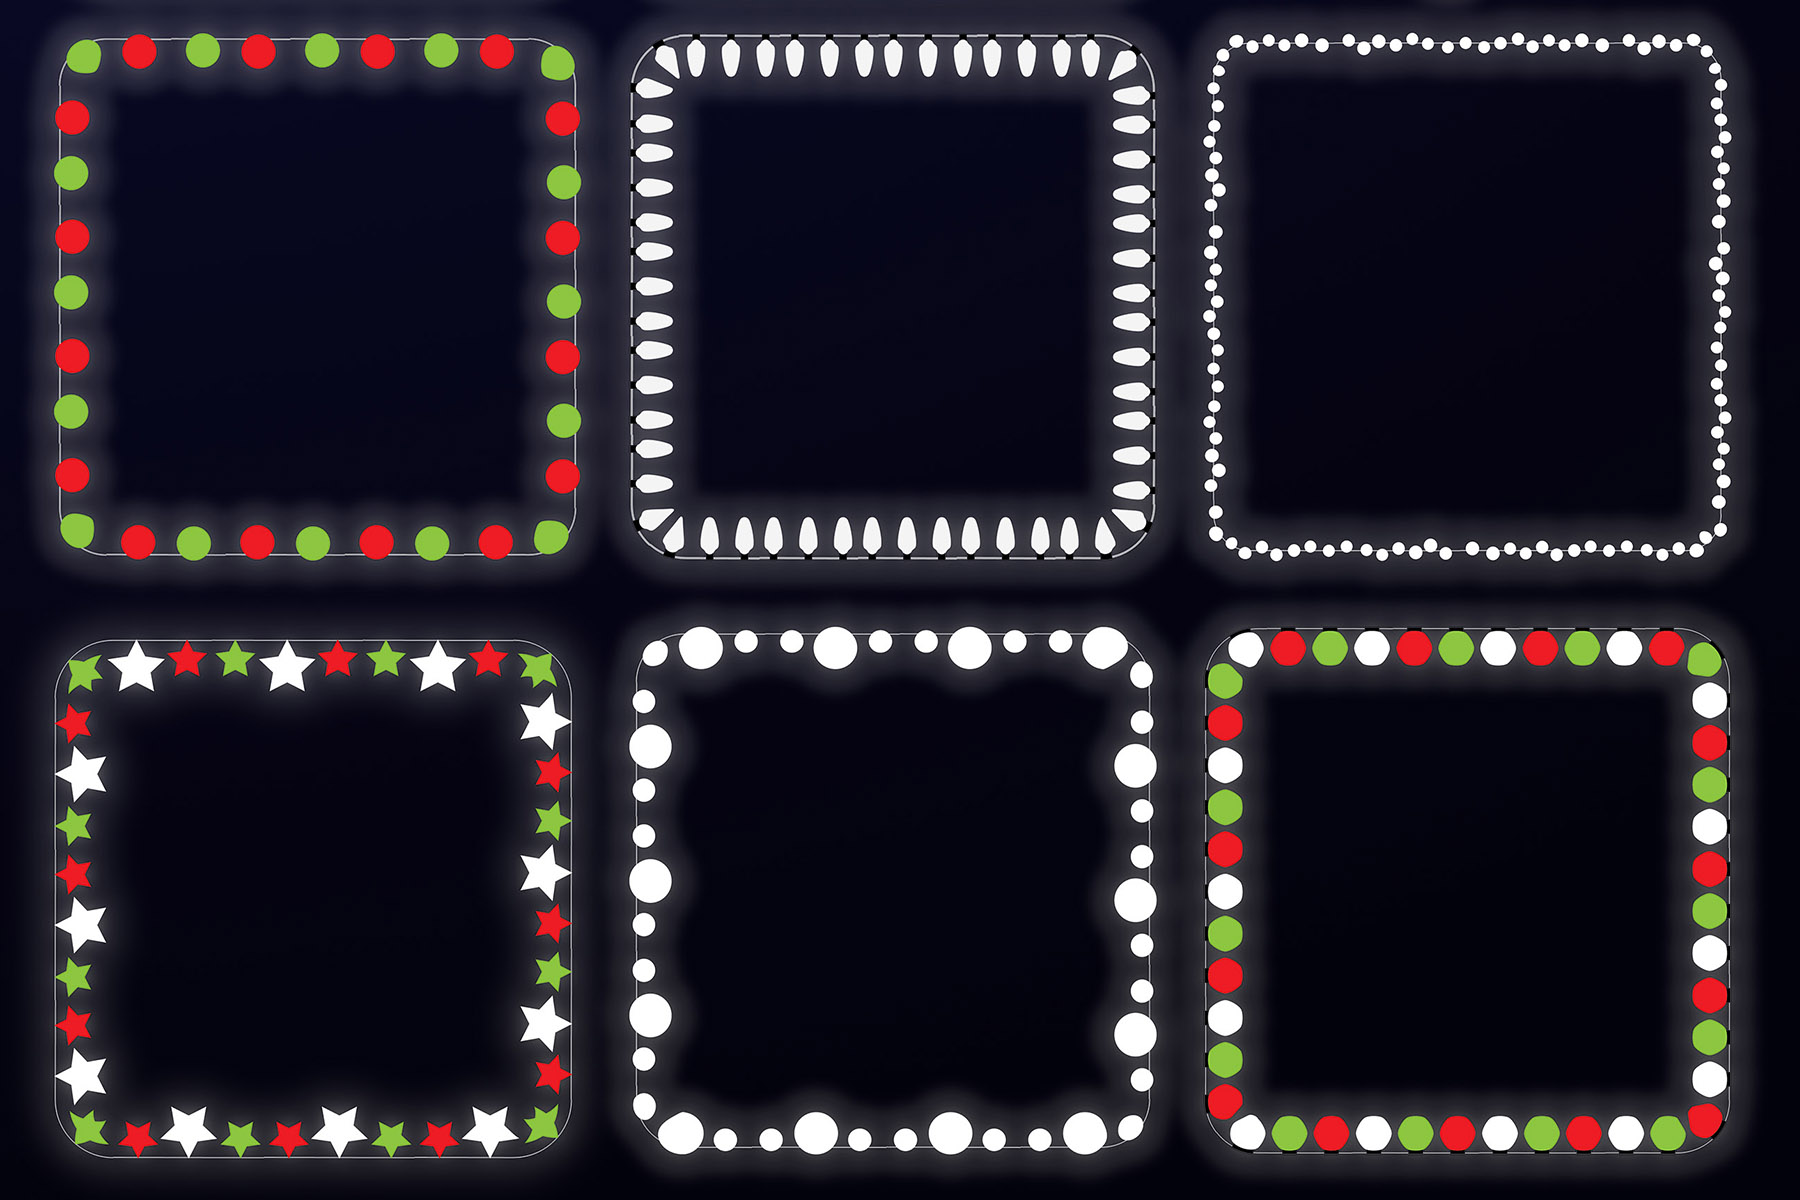 String Lights - Borders and Frames Illustrations example image 7